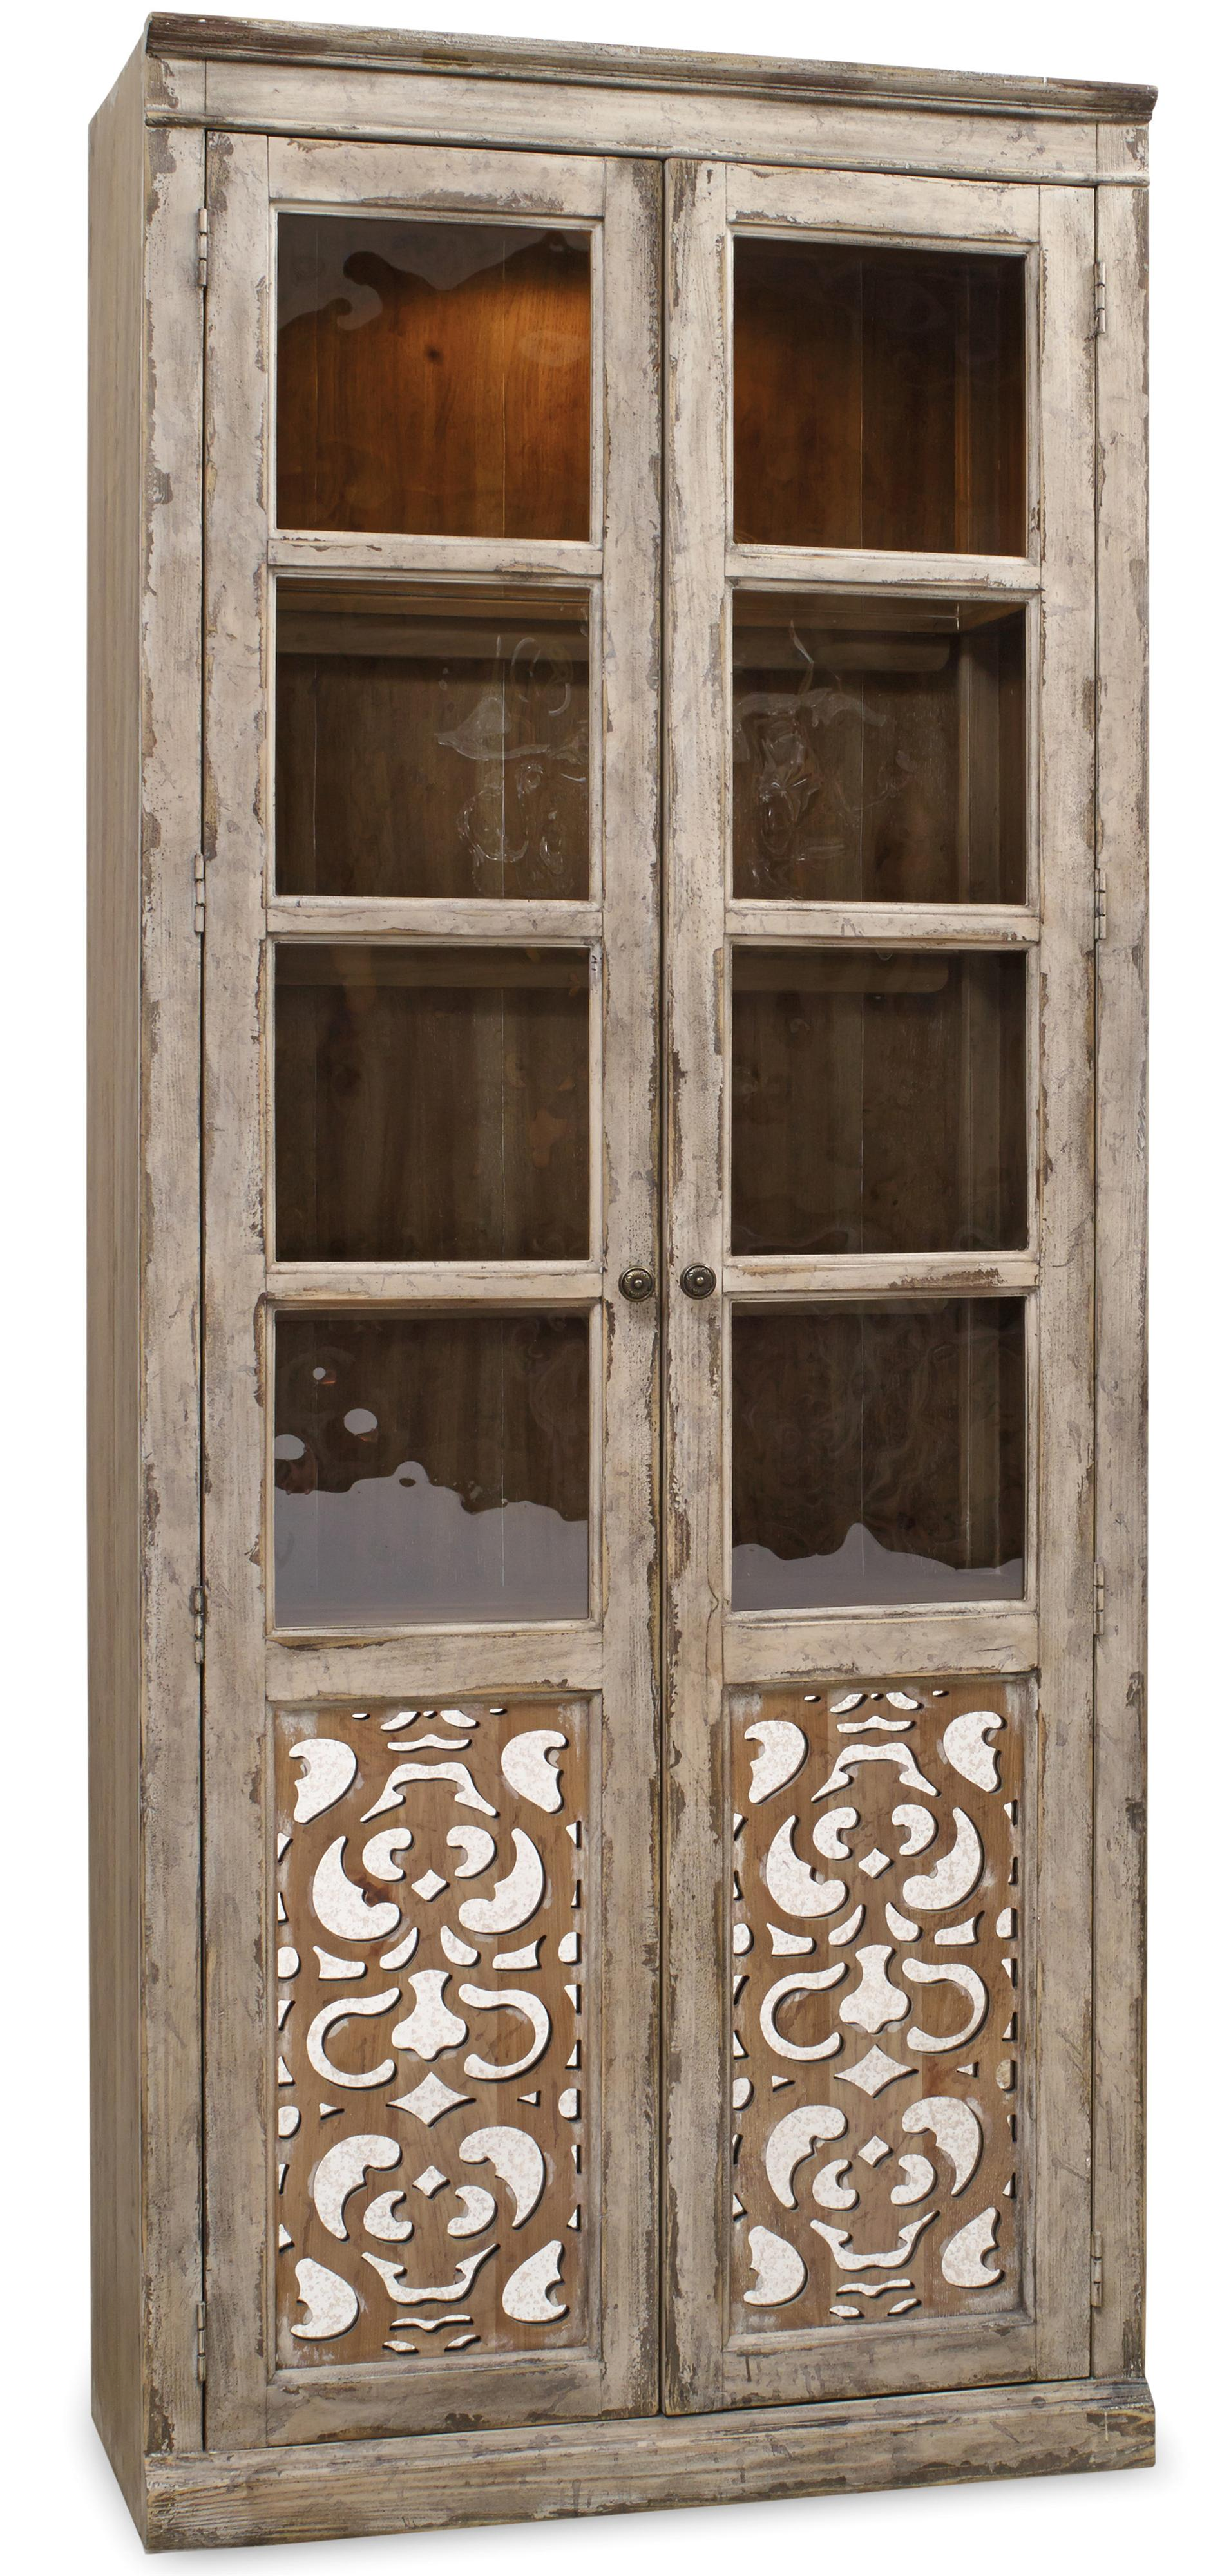 Bunching Curio with Fretwork Doors : fretwork doors - pezcame.com